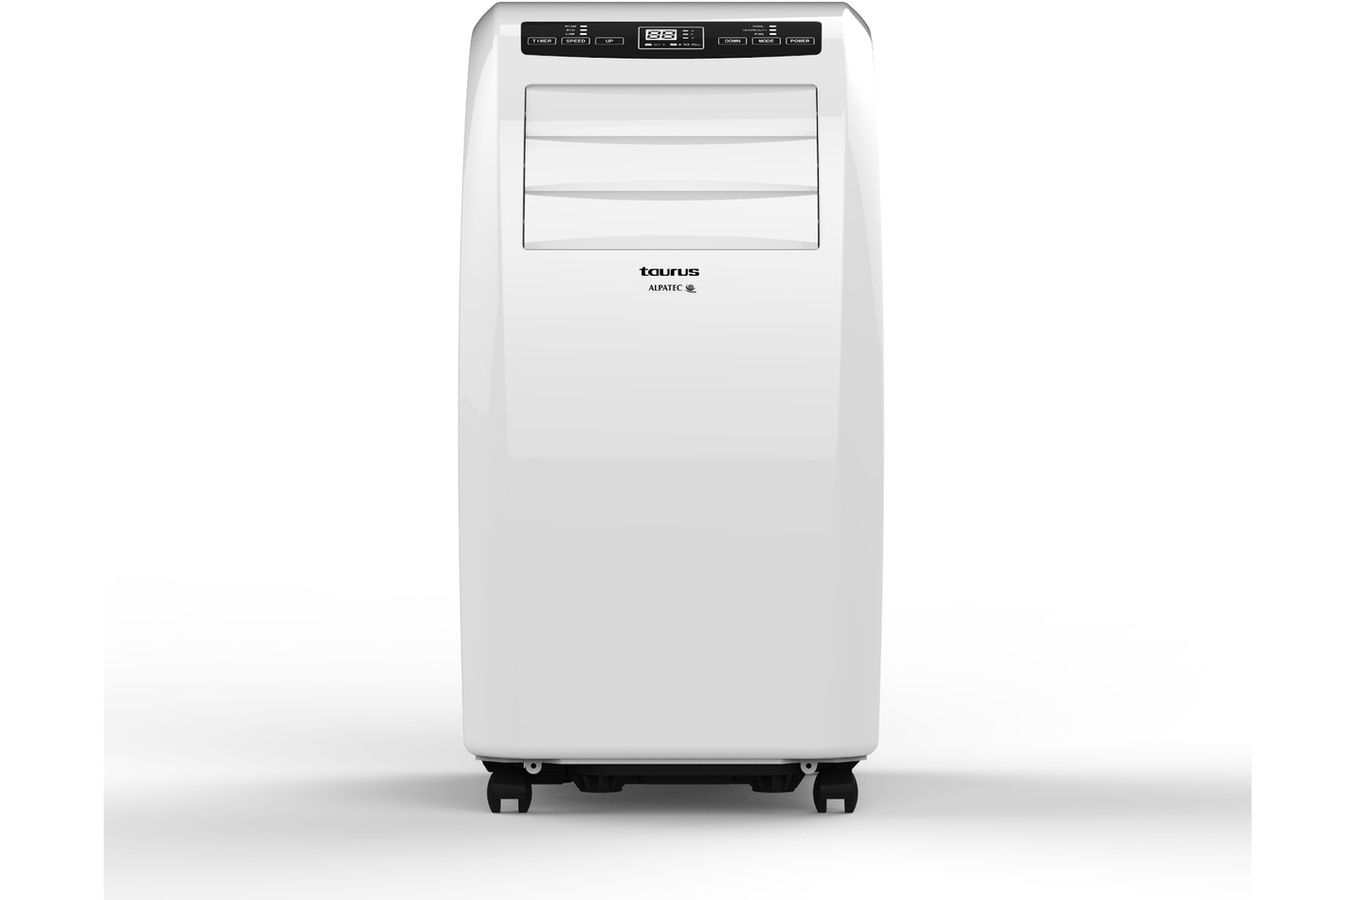 Climatiseur mobile alpatec by taurus ac 293 kt pas cher - Climatiseur mobile darty ...